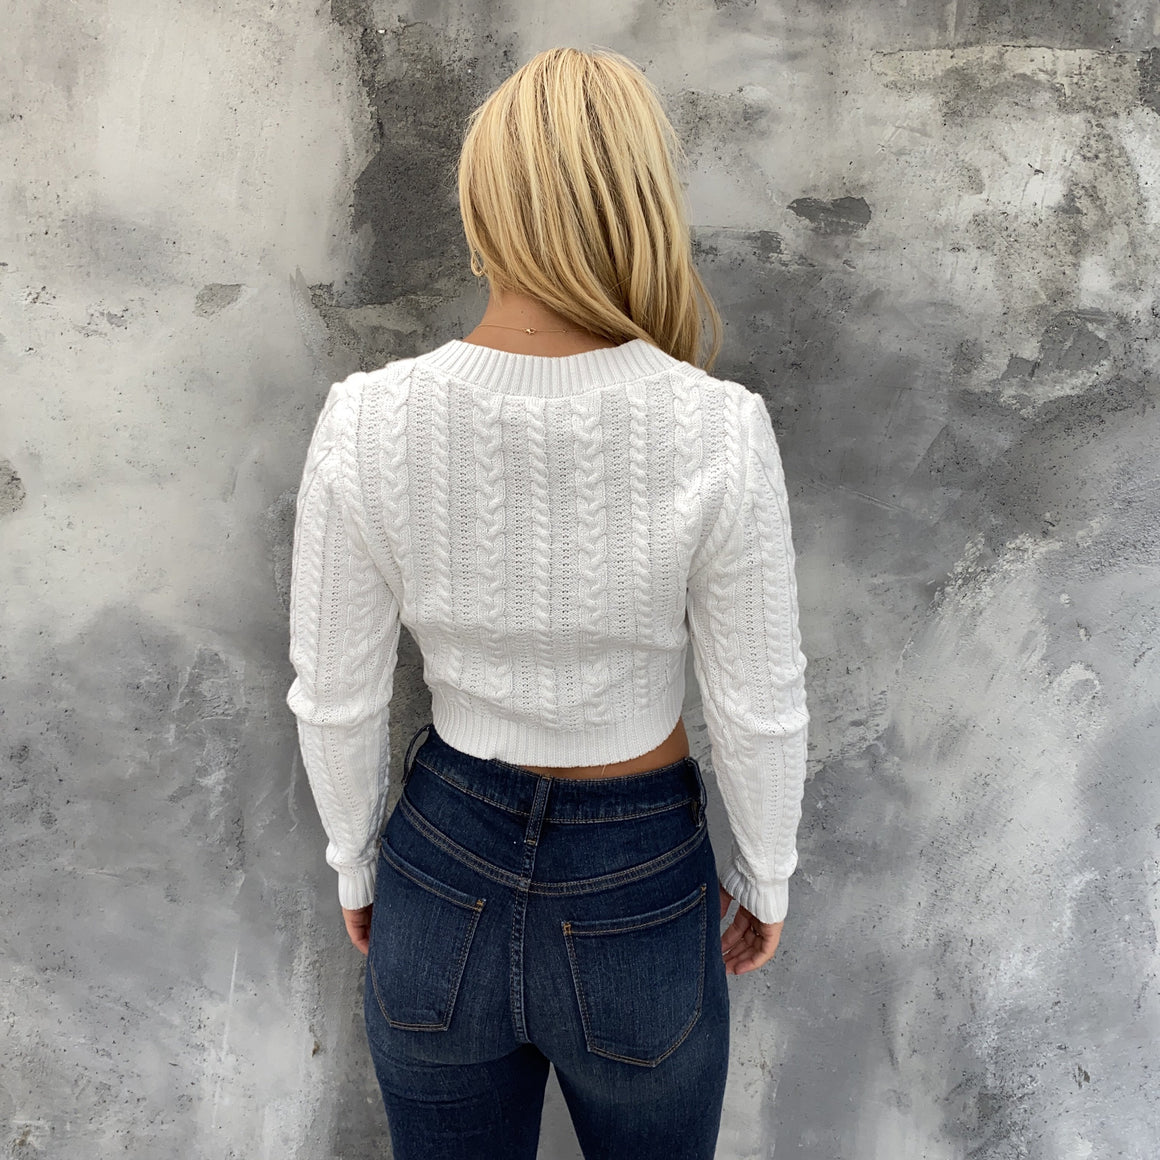 Snow Bunny White Cable Knit Sweater - Dainty Hooligan